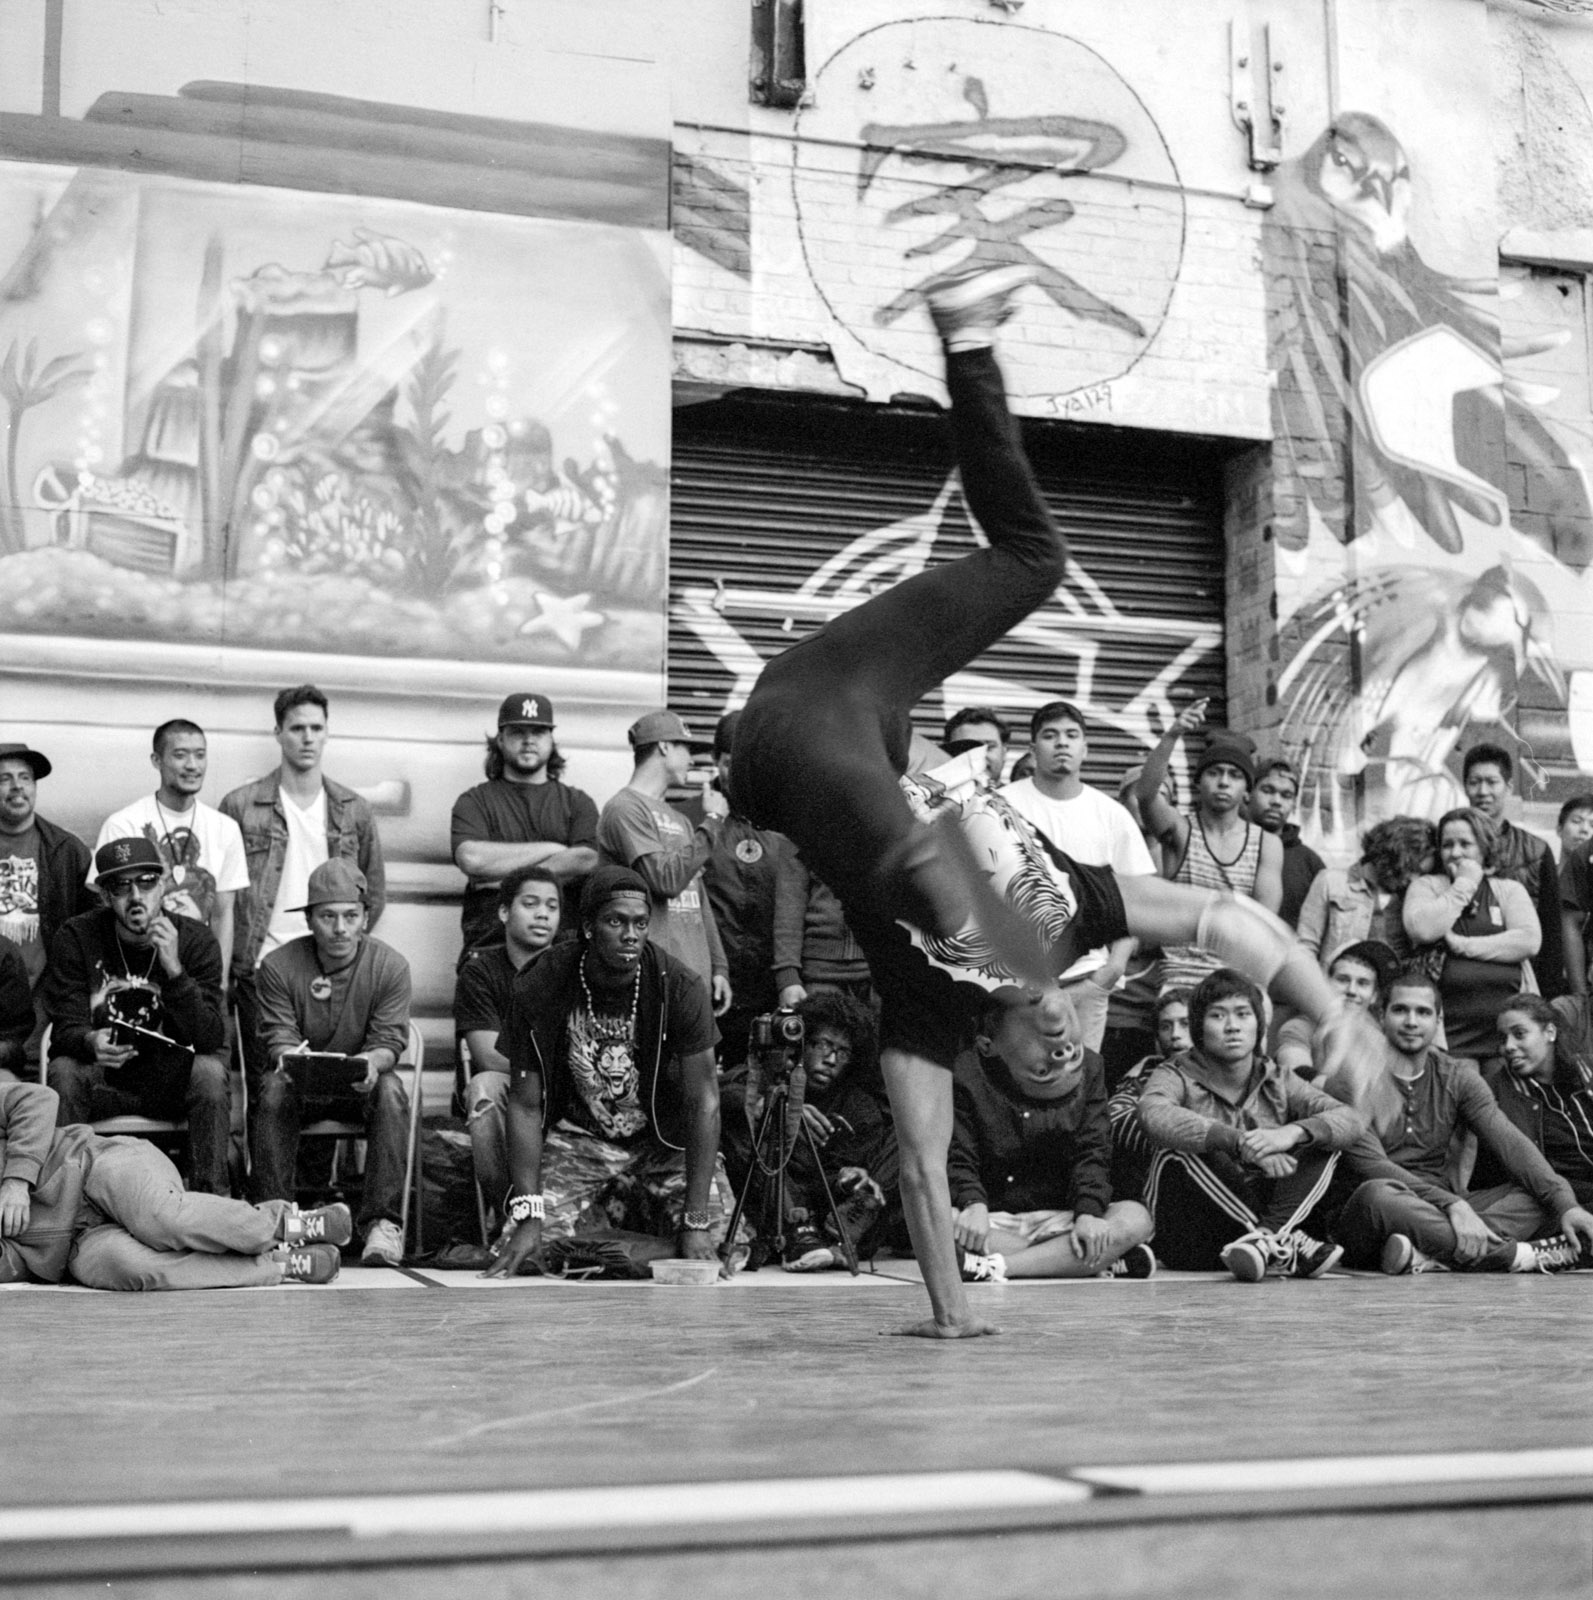 B boys breakdance at 5 Pointz